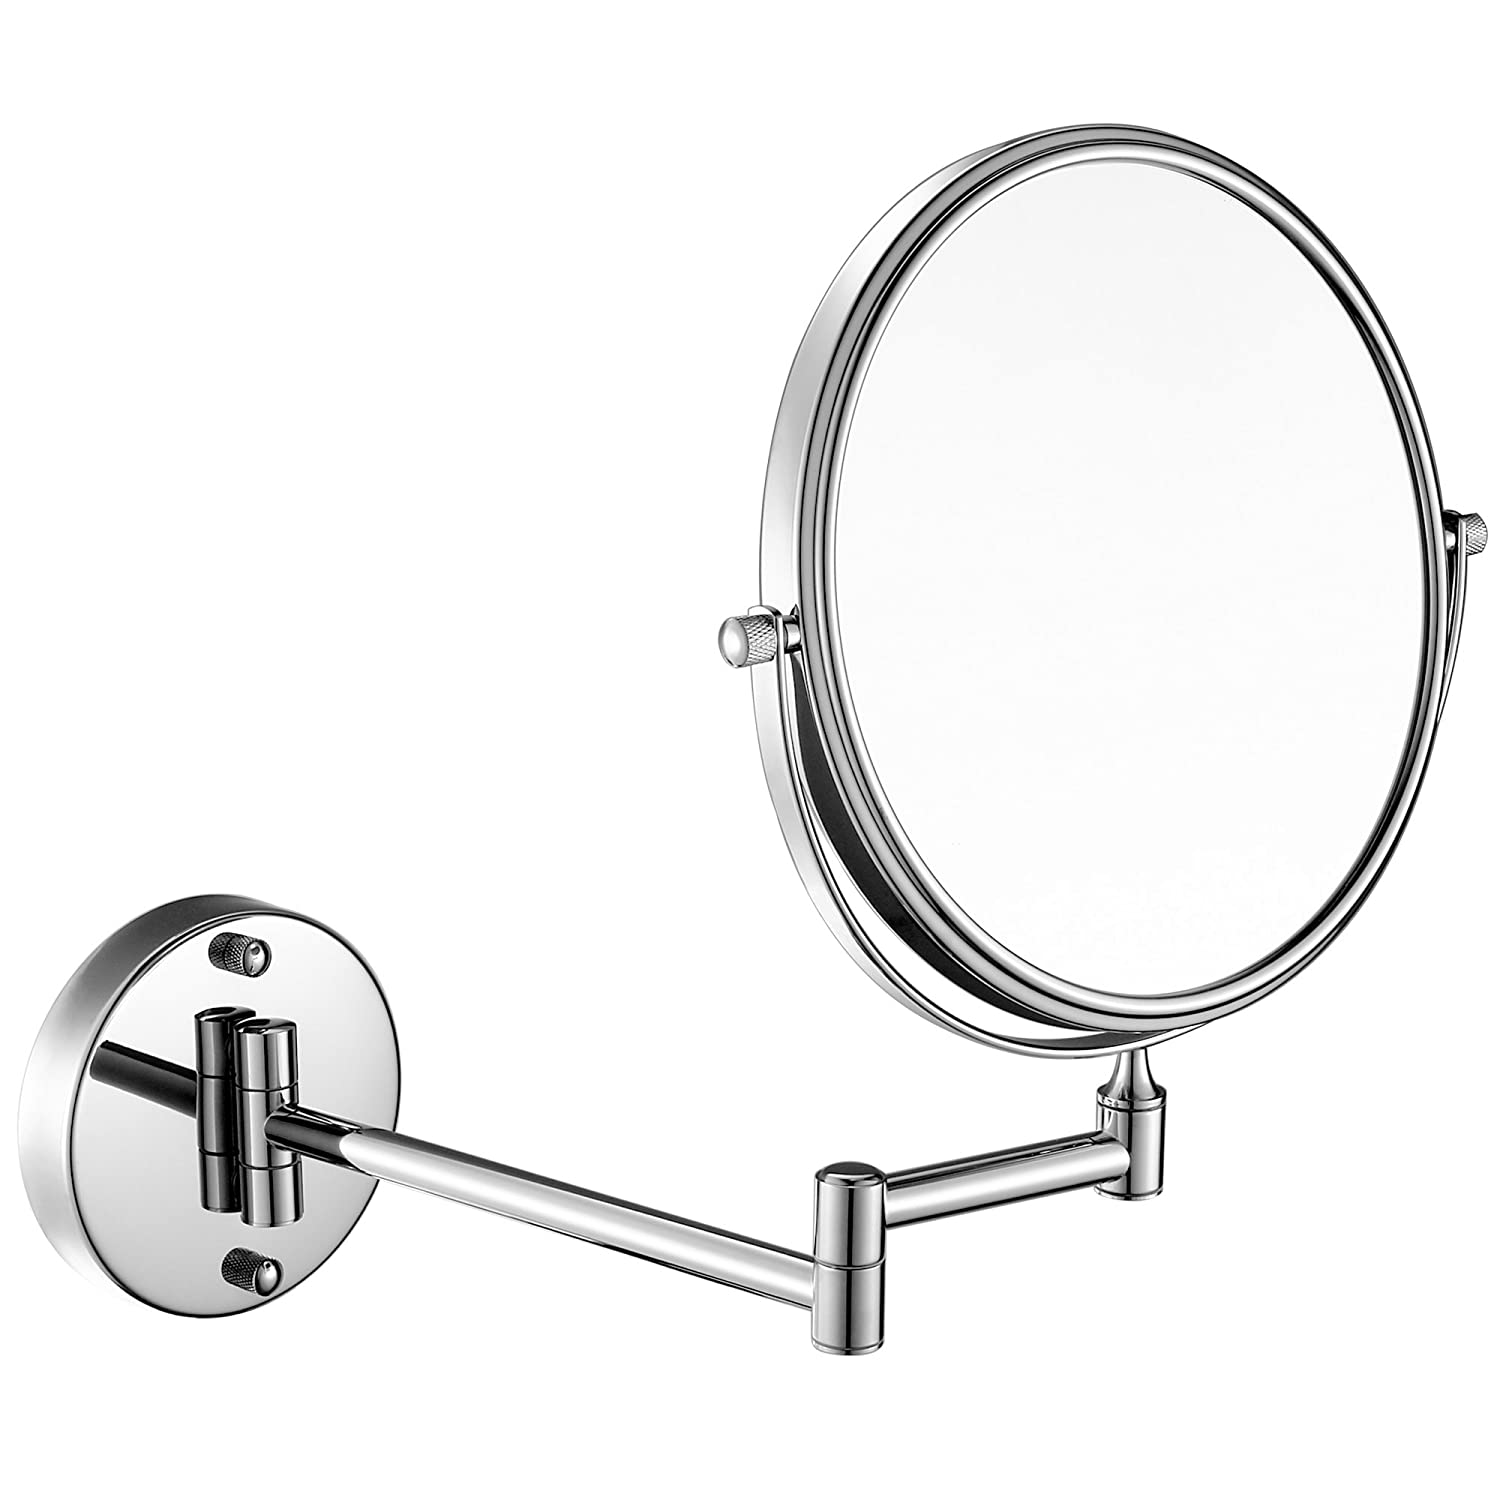 GURUN 8-Inch Two Sided Makeup Mirrors Dual Arm Wall Mount Mirror with 10x Magnification,Chrome Finish M1309 8in,10x